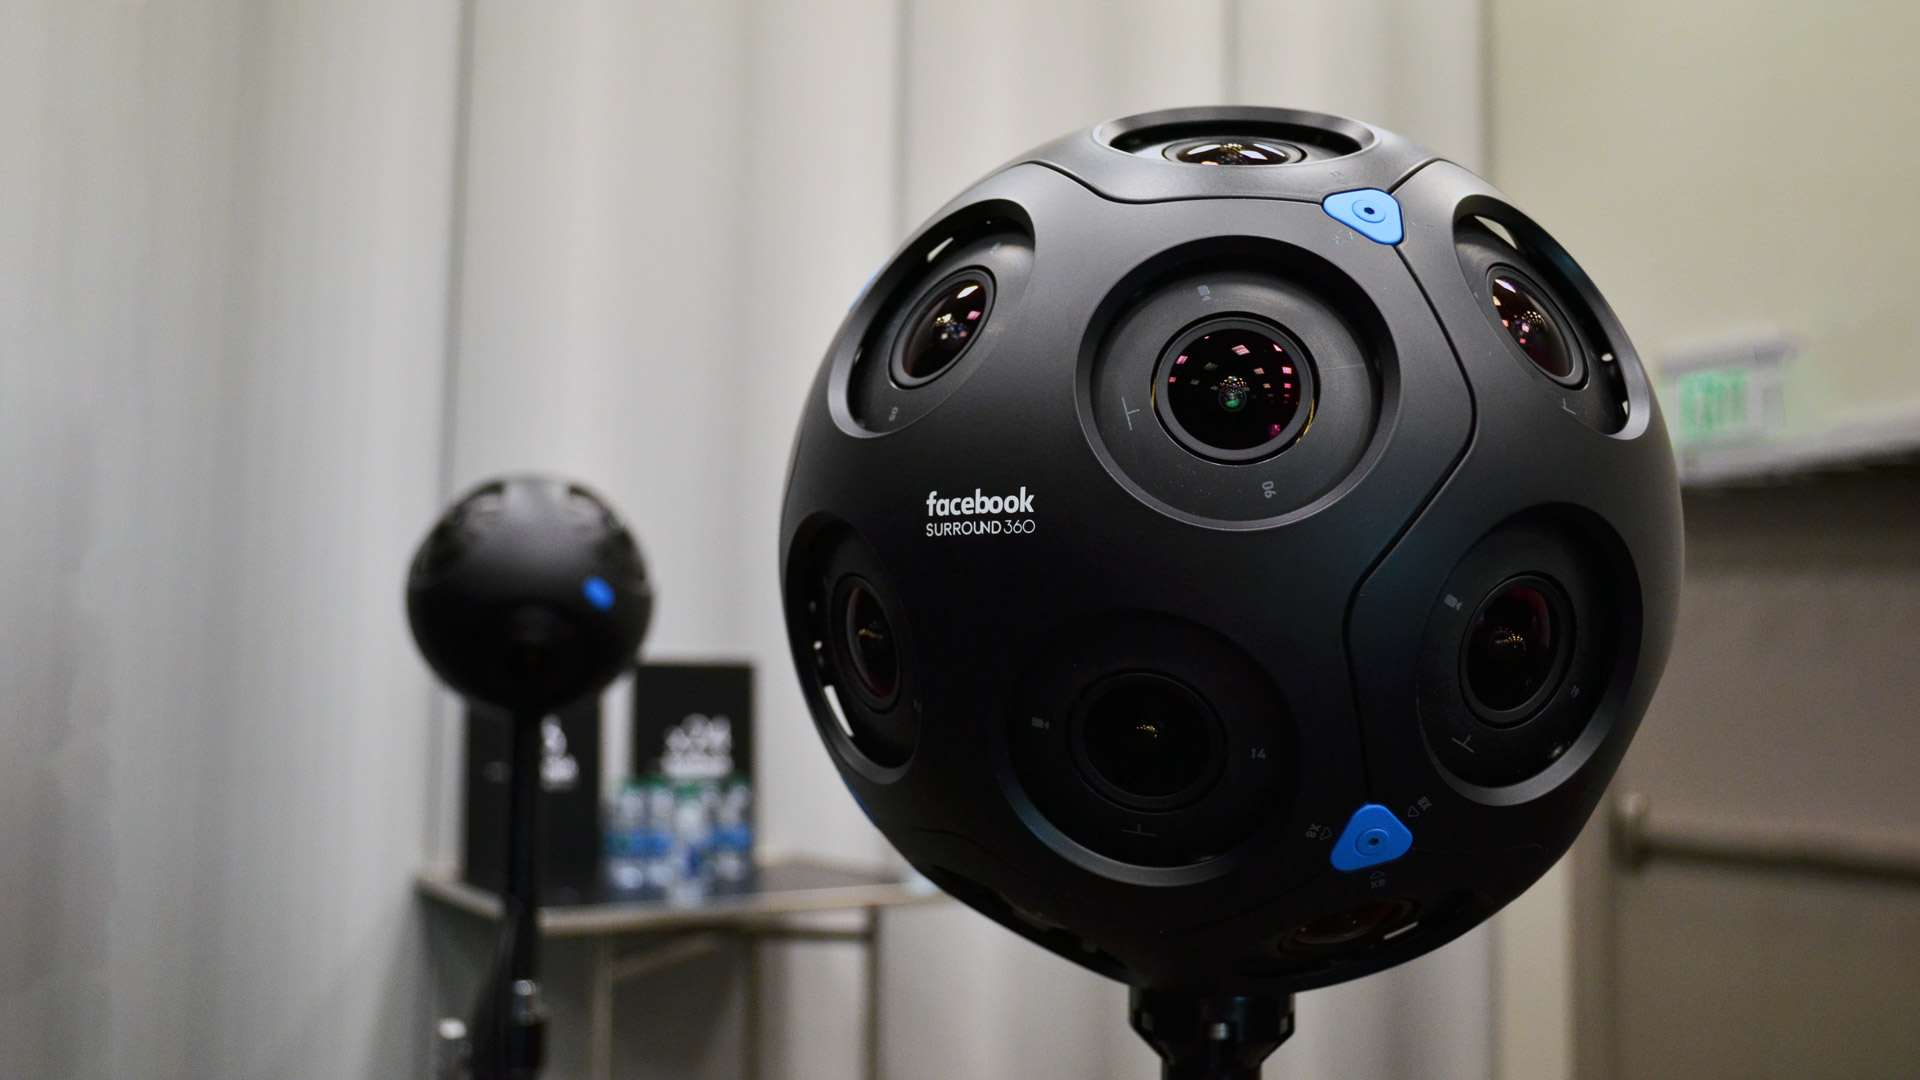 360 cameras shoot in all directions